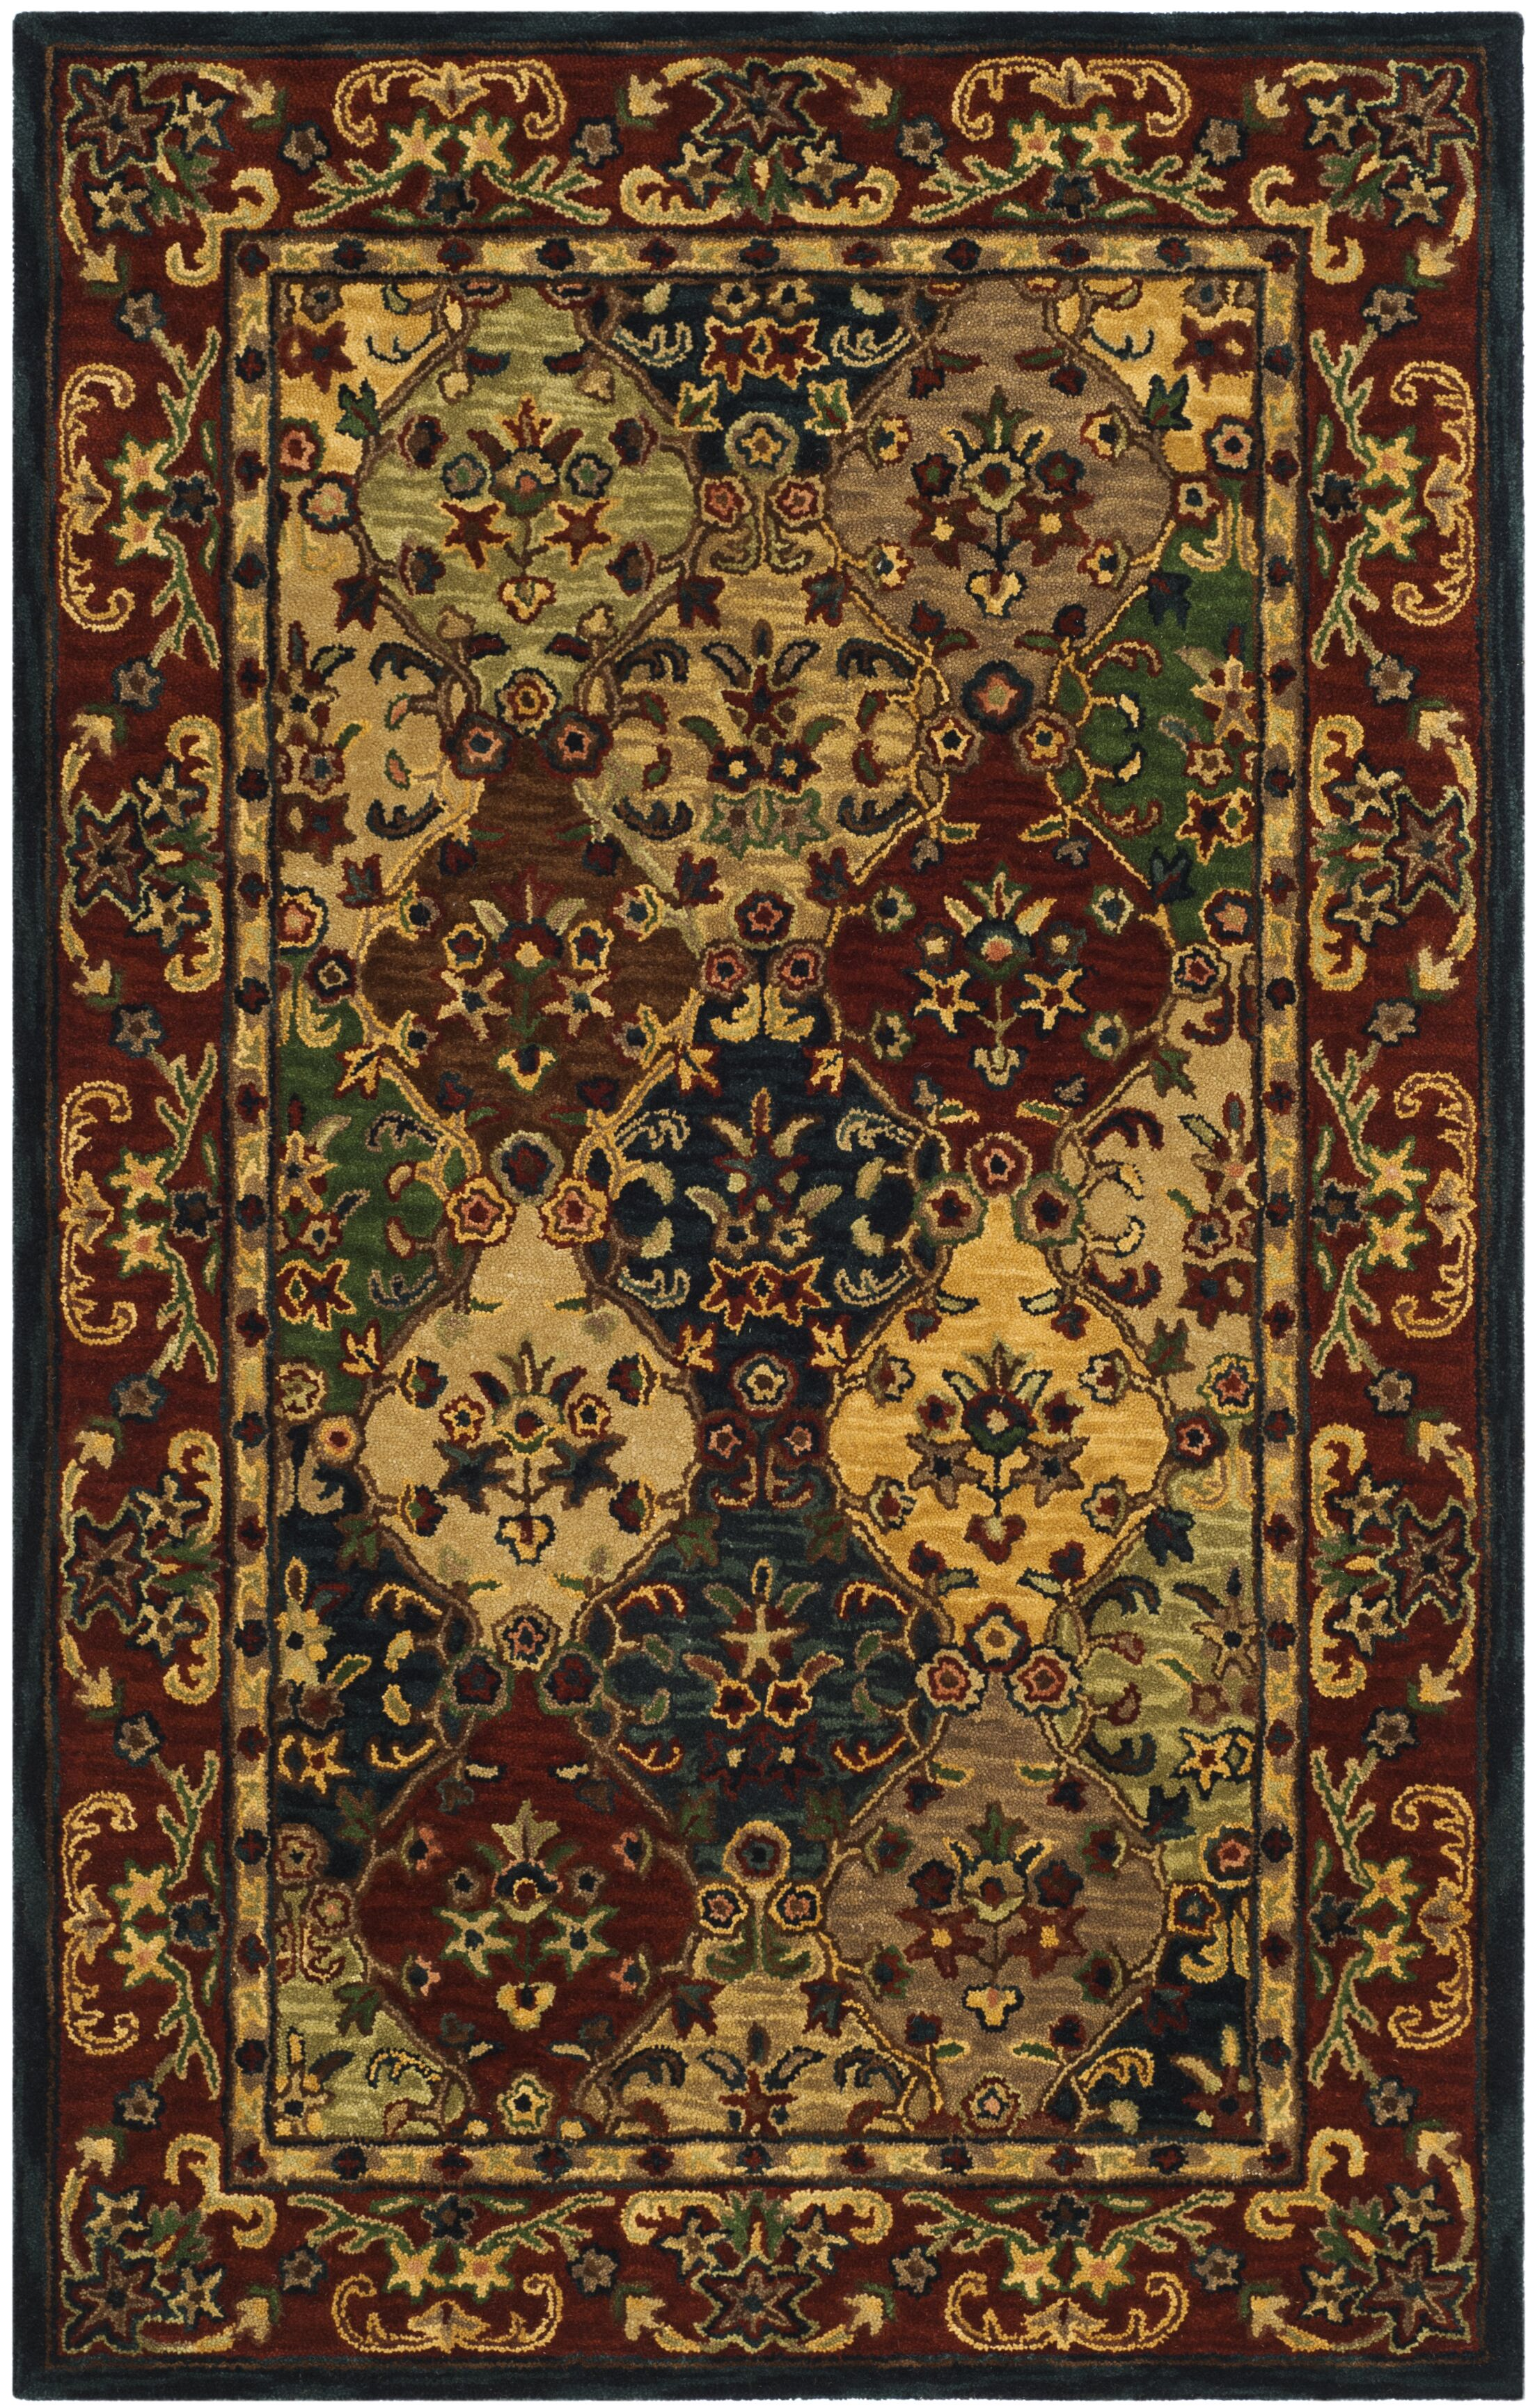 Moss Hand Tufted Wool Red/Yellow Area Rug Rug Size: Rectangle 5' x 8'